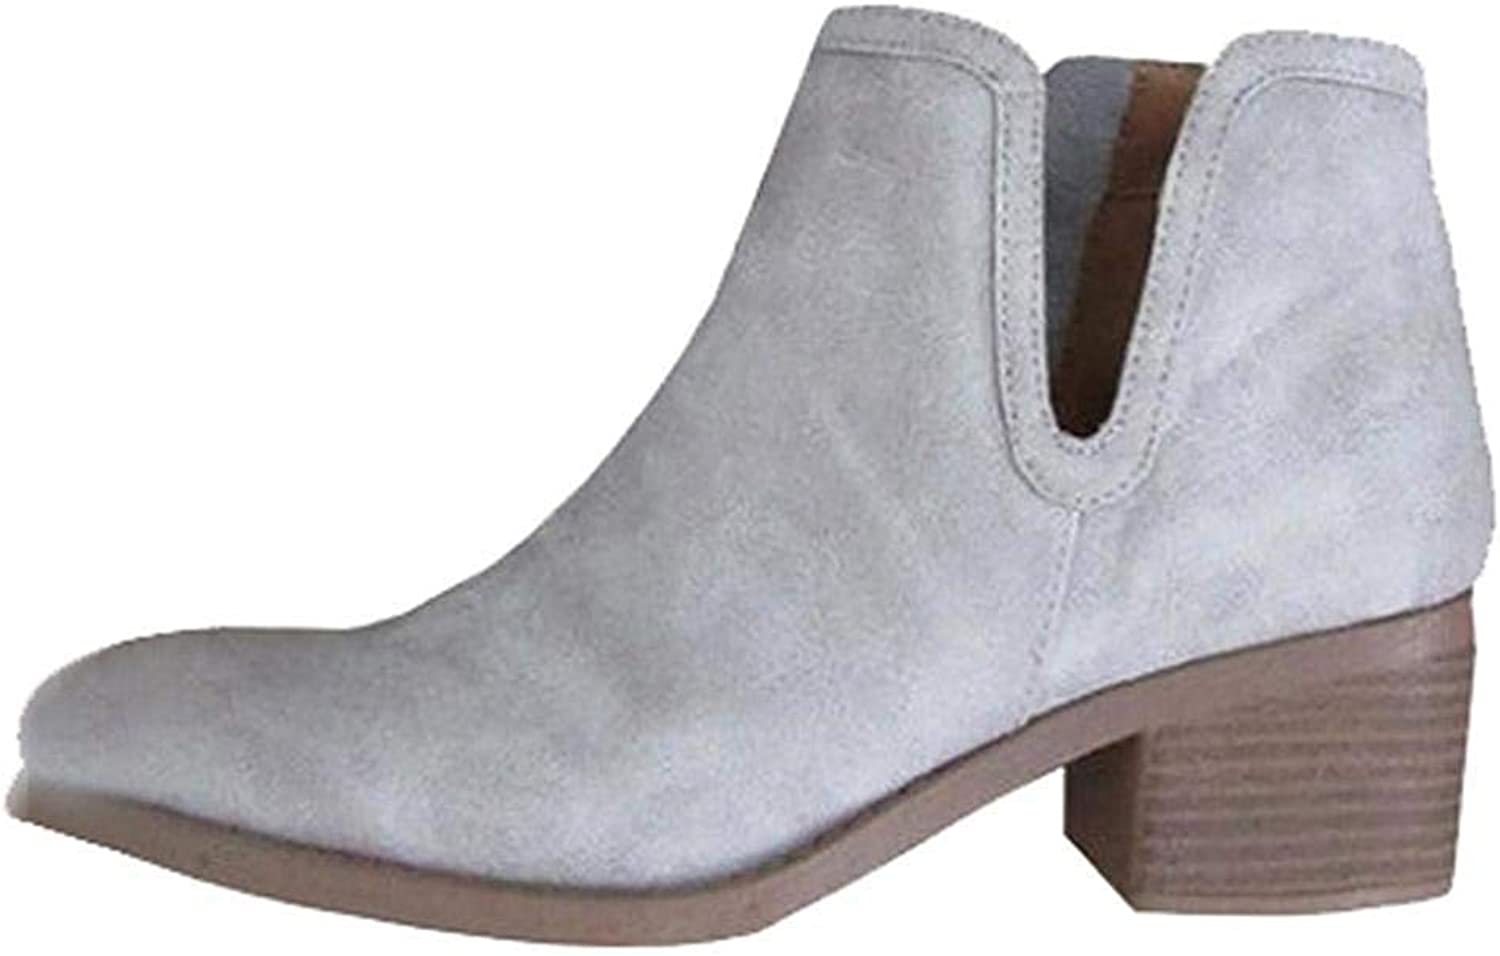 A-LING Women Boot,Low Heel Thick Heel Boot Leather Zipper Boot Snow Boot